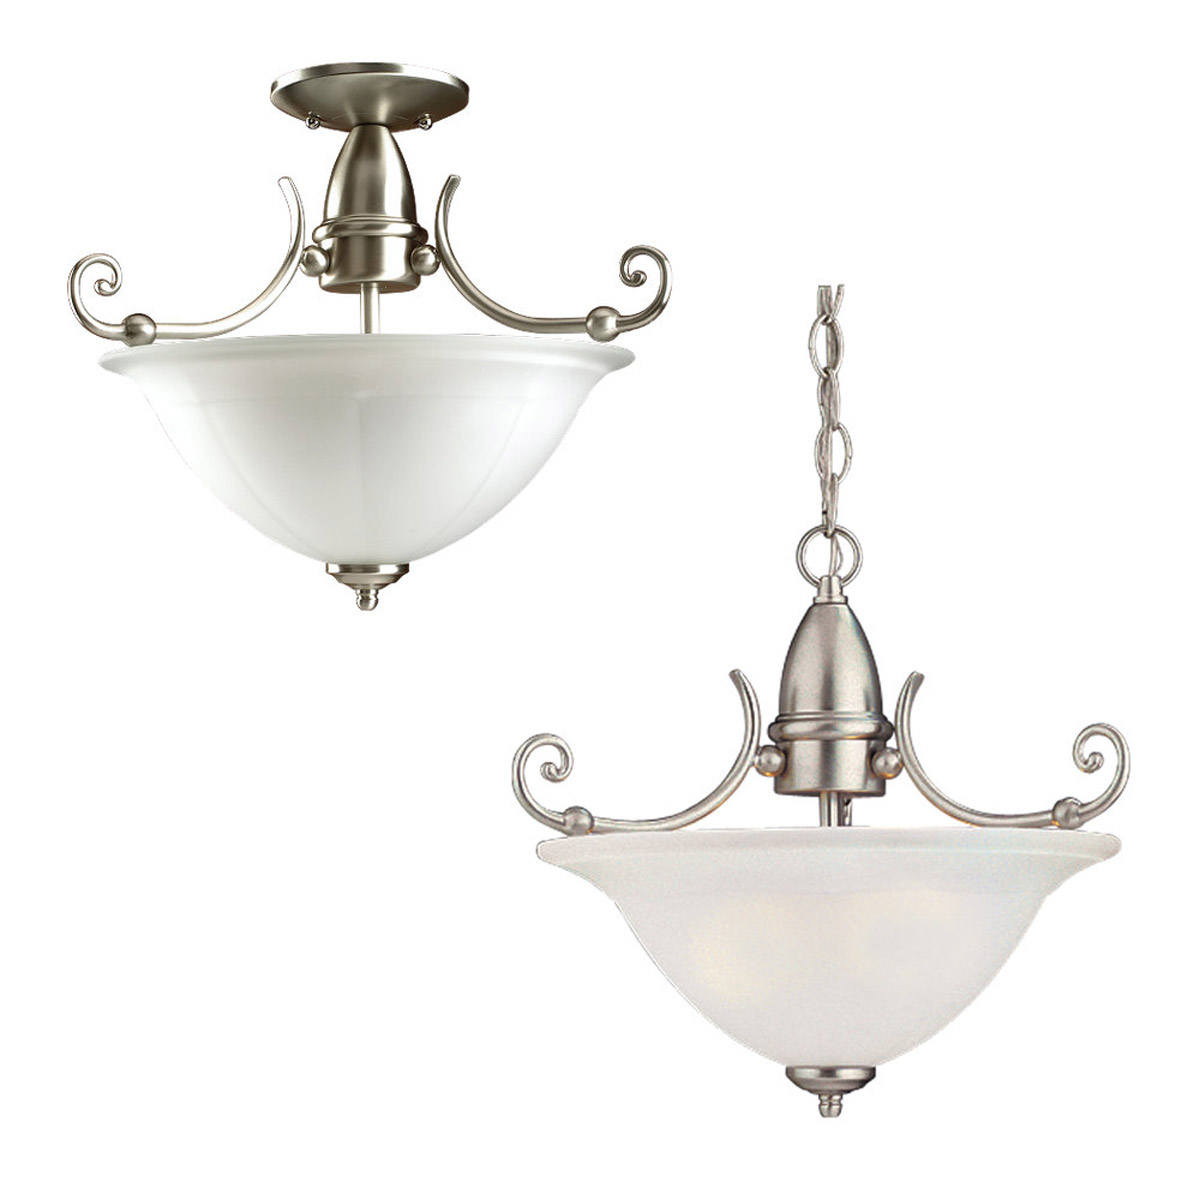 Sea Gull Lighting Canterbury 2 Light Pendant Convertible in Brushed Nickel 51050-962